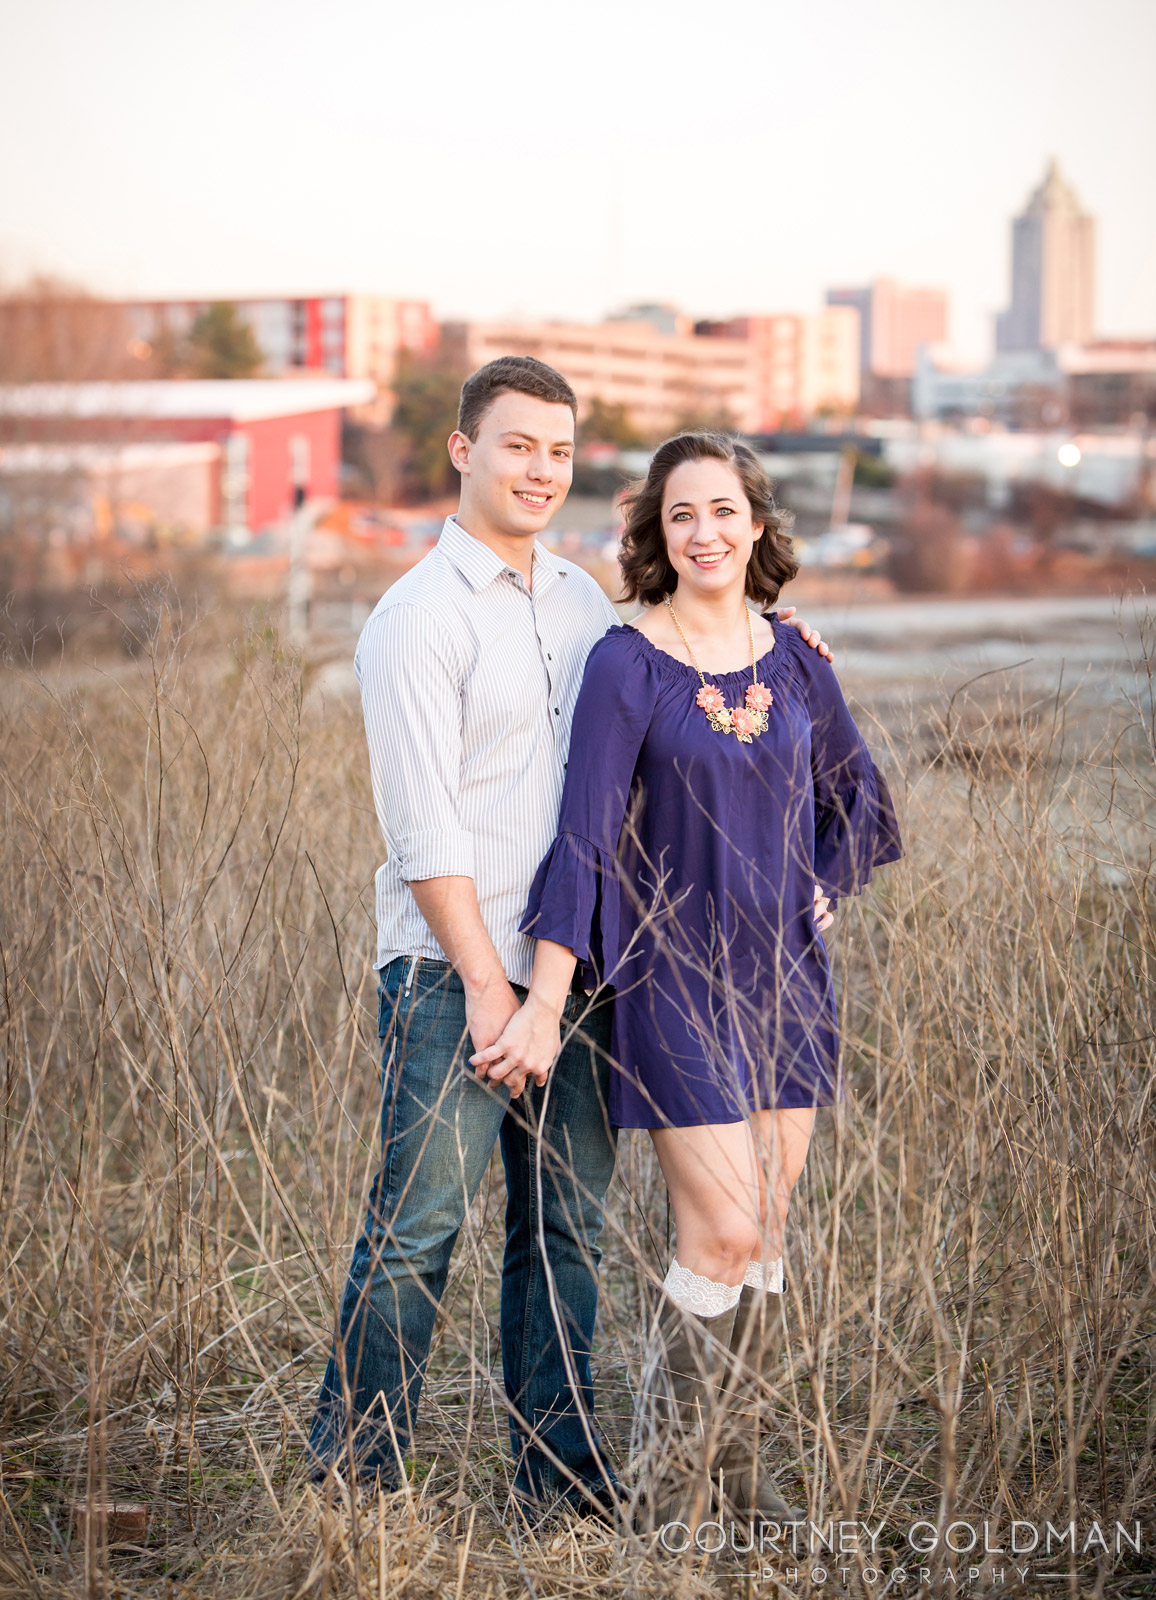 Atlanta-Couples-Engagement-Proposal-Photography-by-Courtney-Goldman-50.jpg